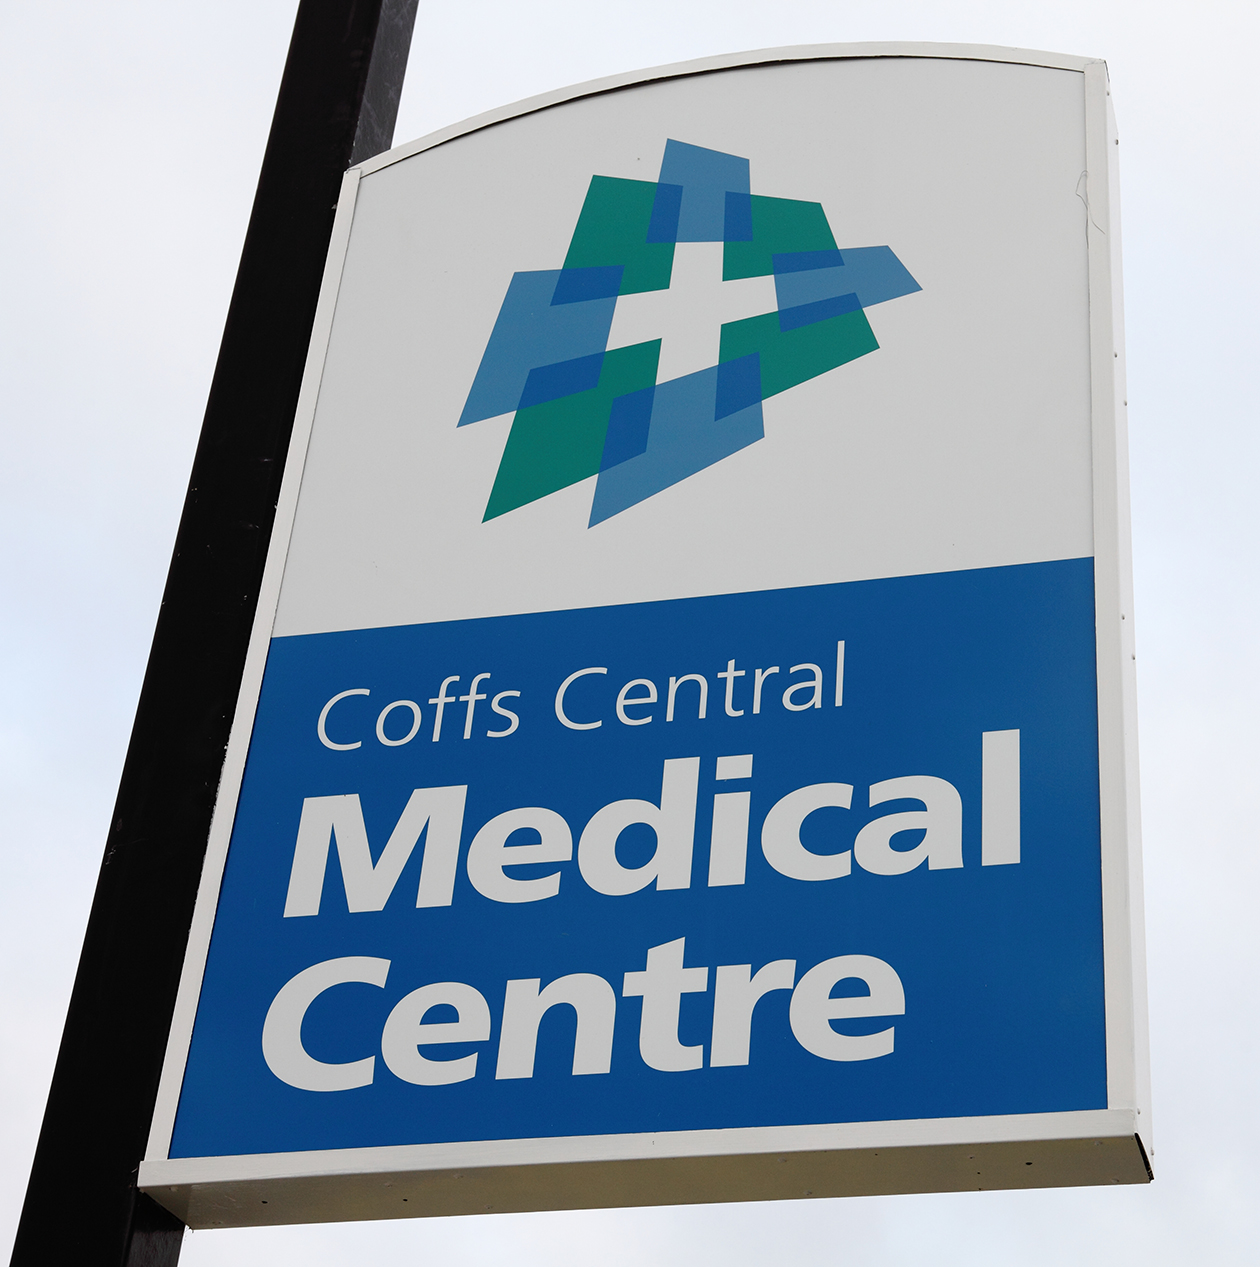 Coffs Central Medical Centre